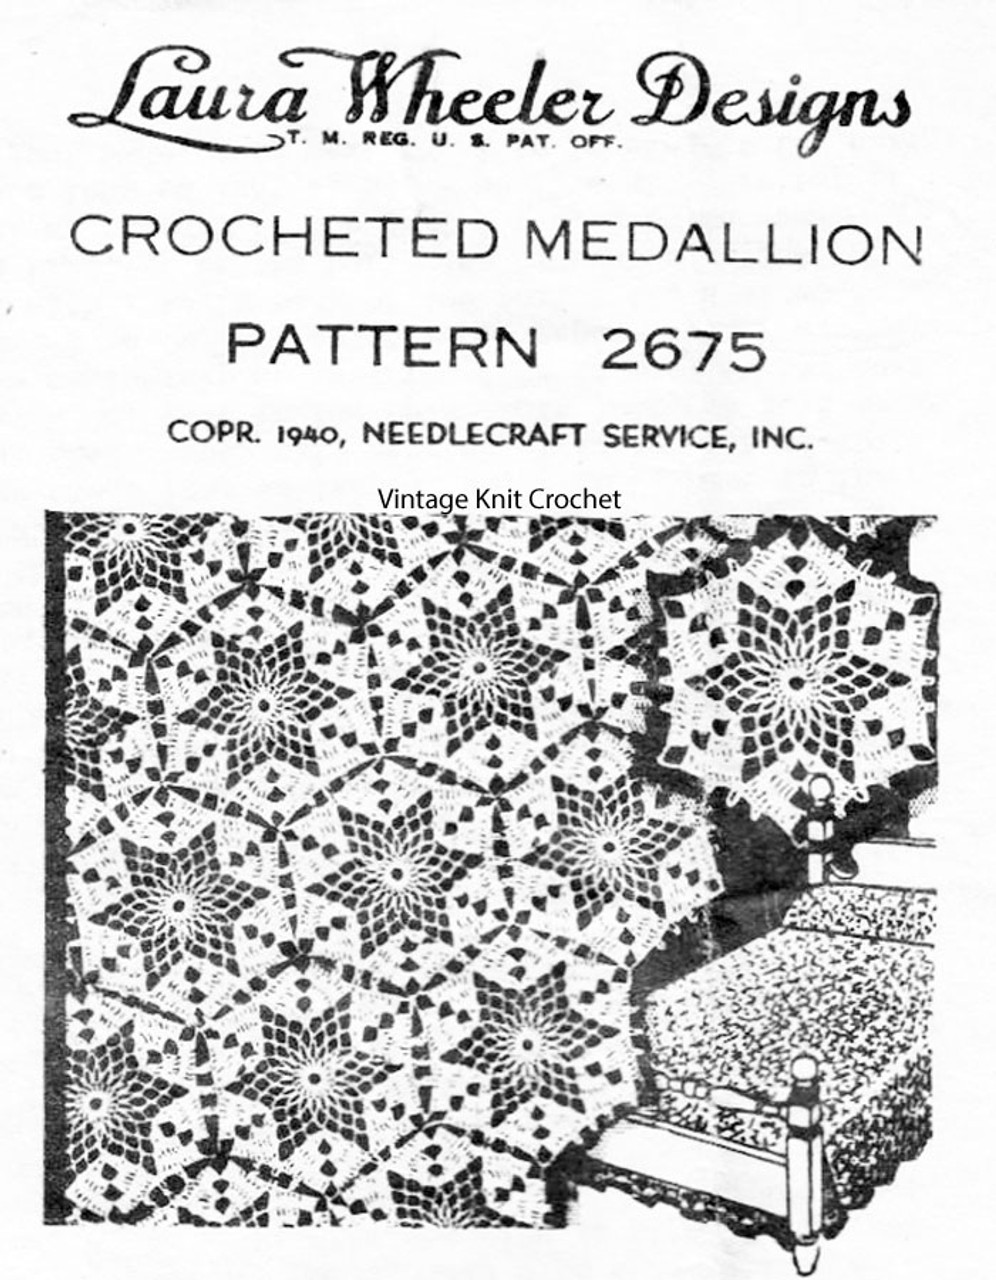 Crochet Bedspread Pattern, Star Medallion, Mail Order Design 2675